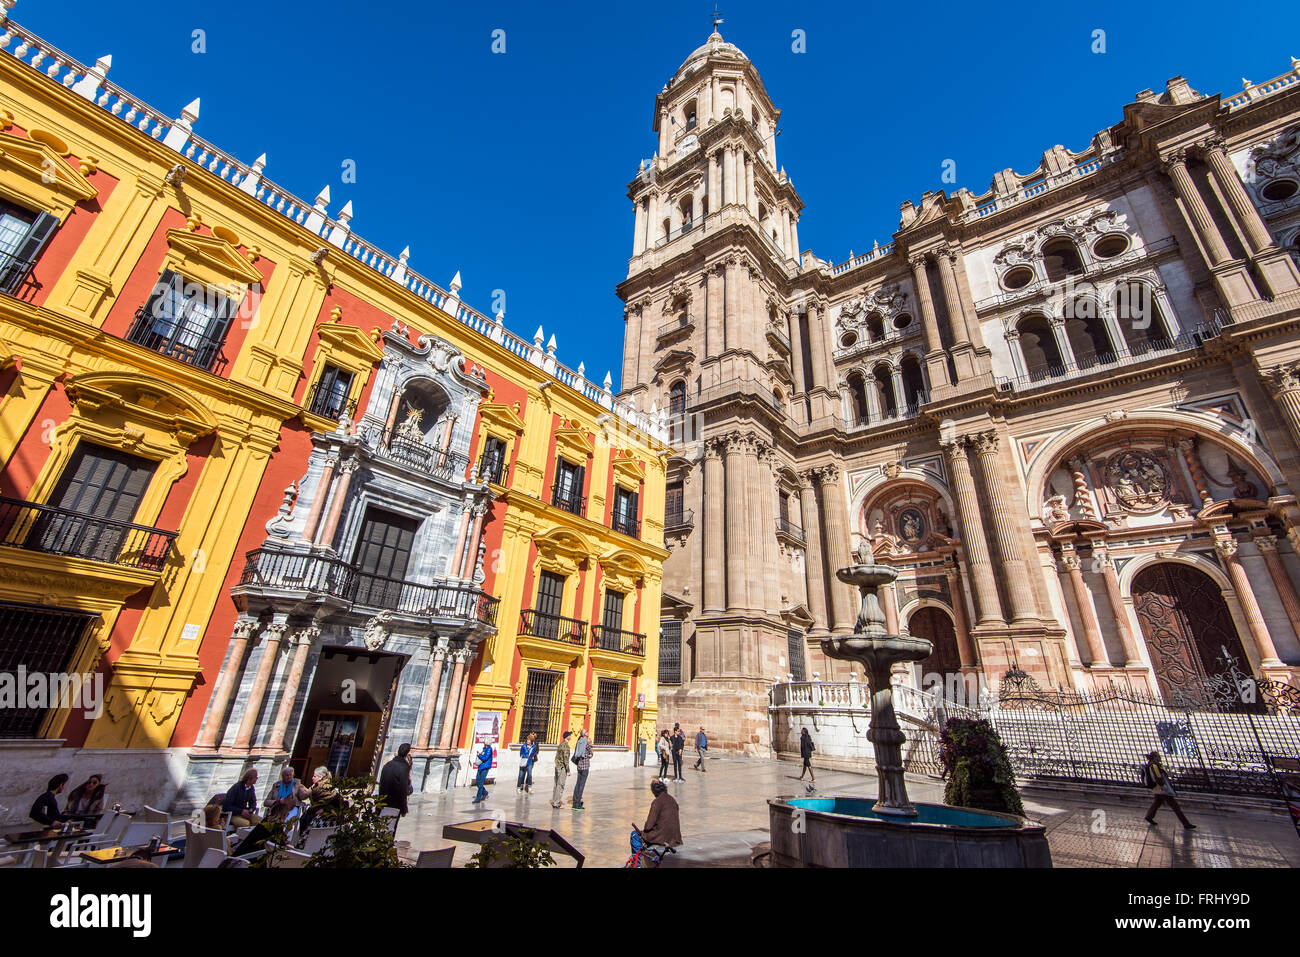 Palacio Episcopal or Episcopal Palace and Cathedral, Plaza del Obispo, Malaga, Andalusia, Spain - Stock Image